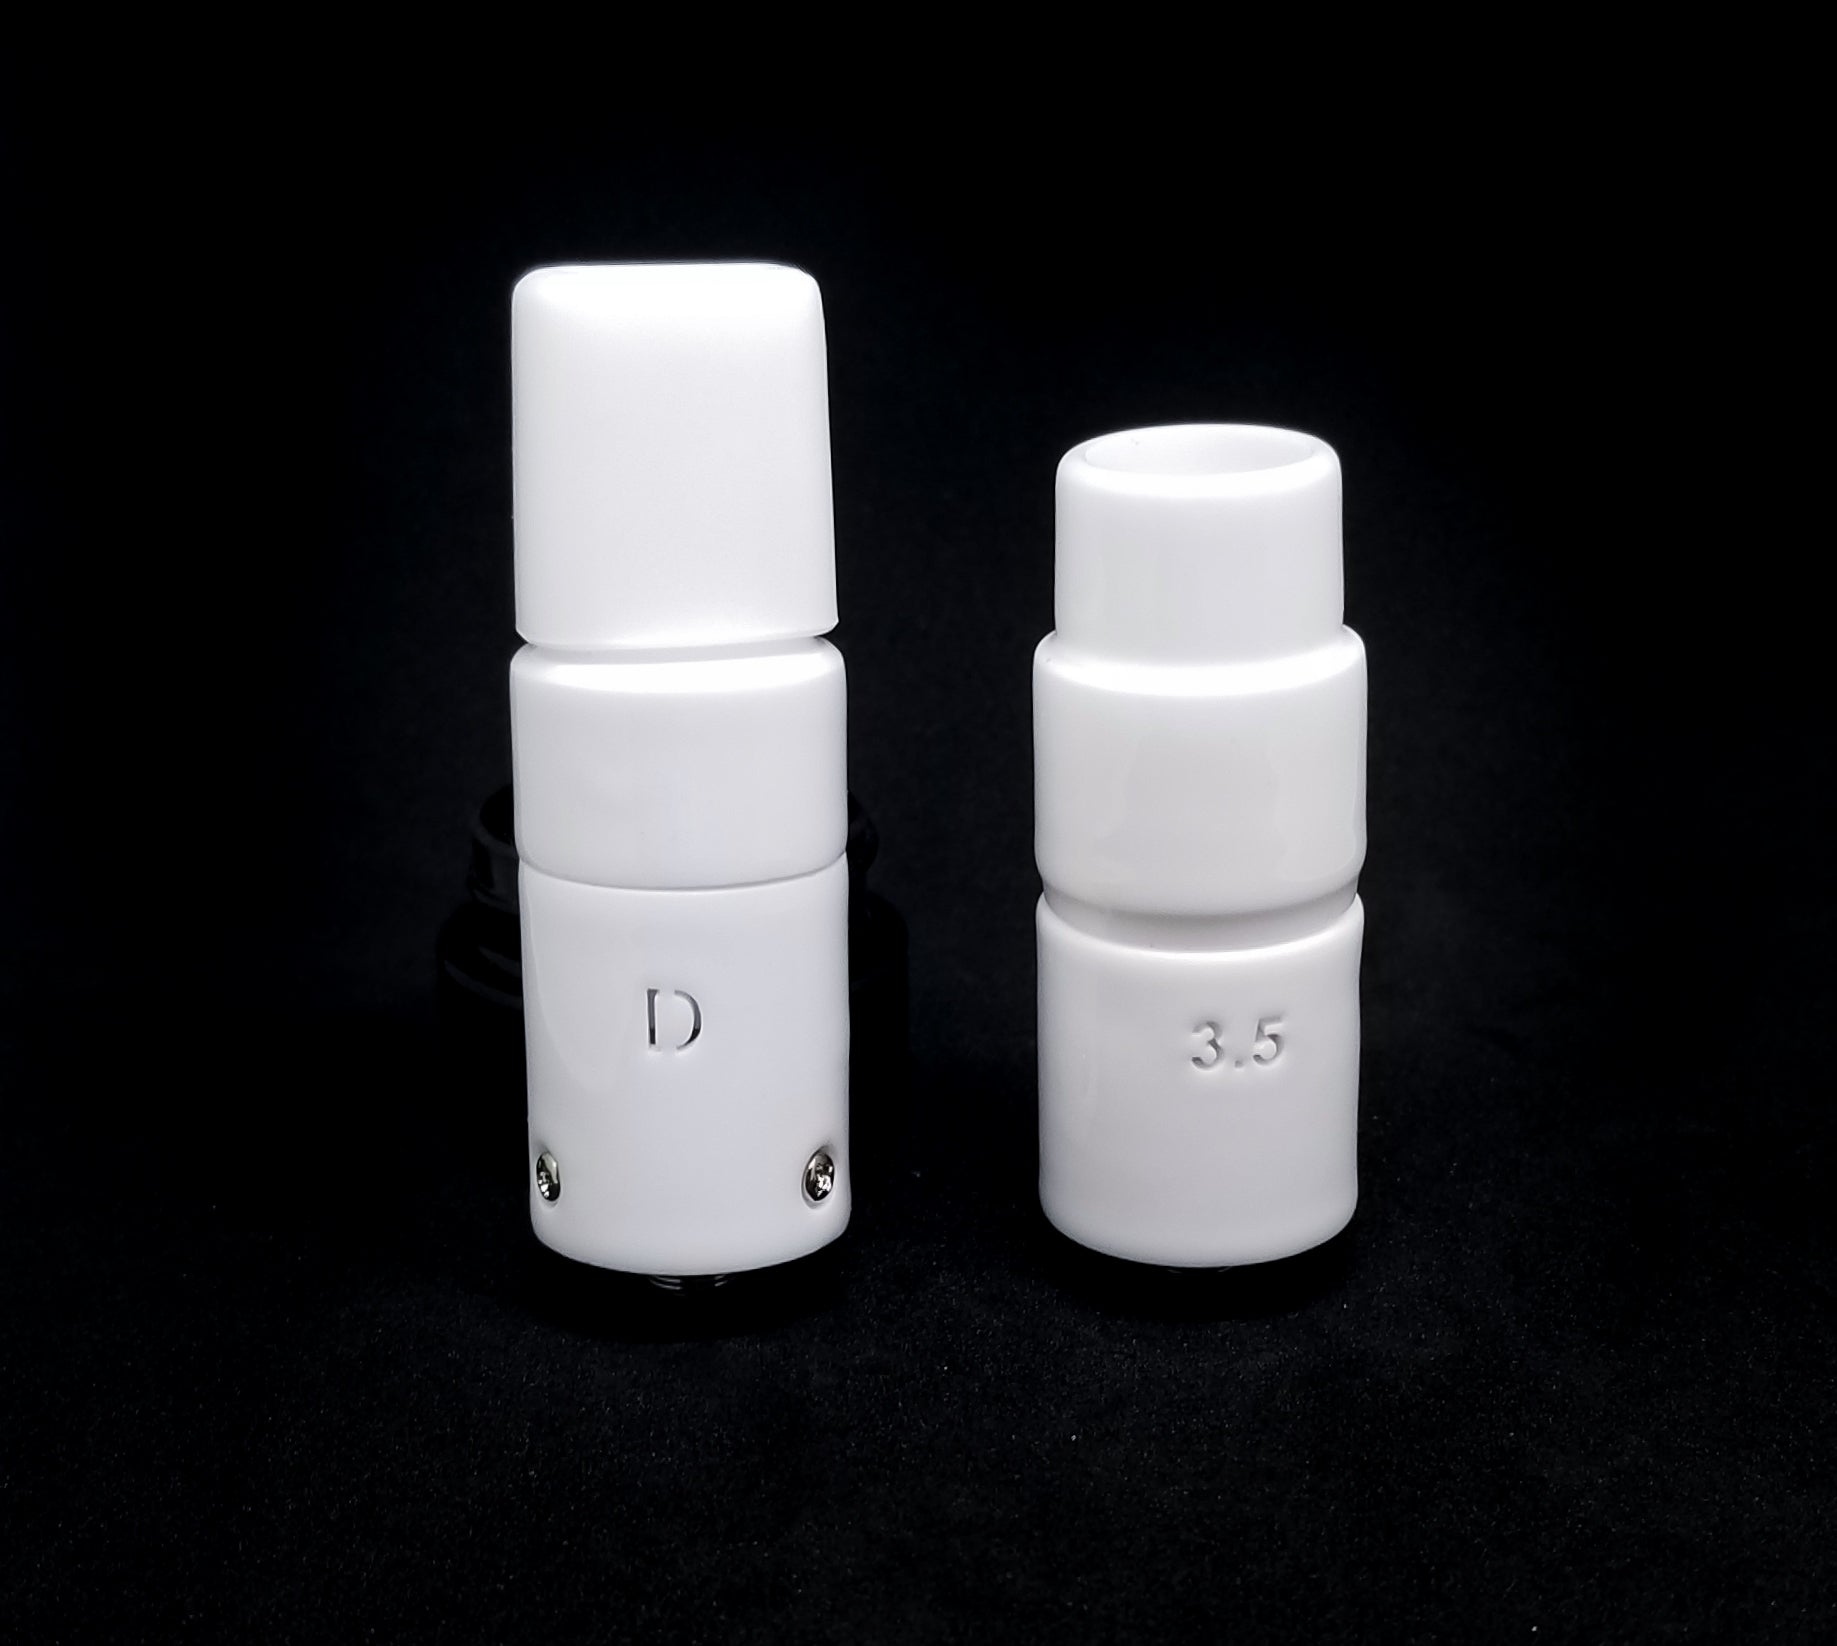 DC Gen 2 Dry Herb Vape in White